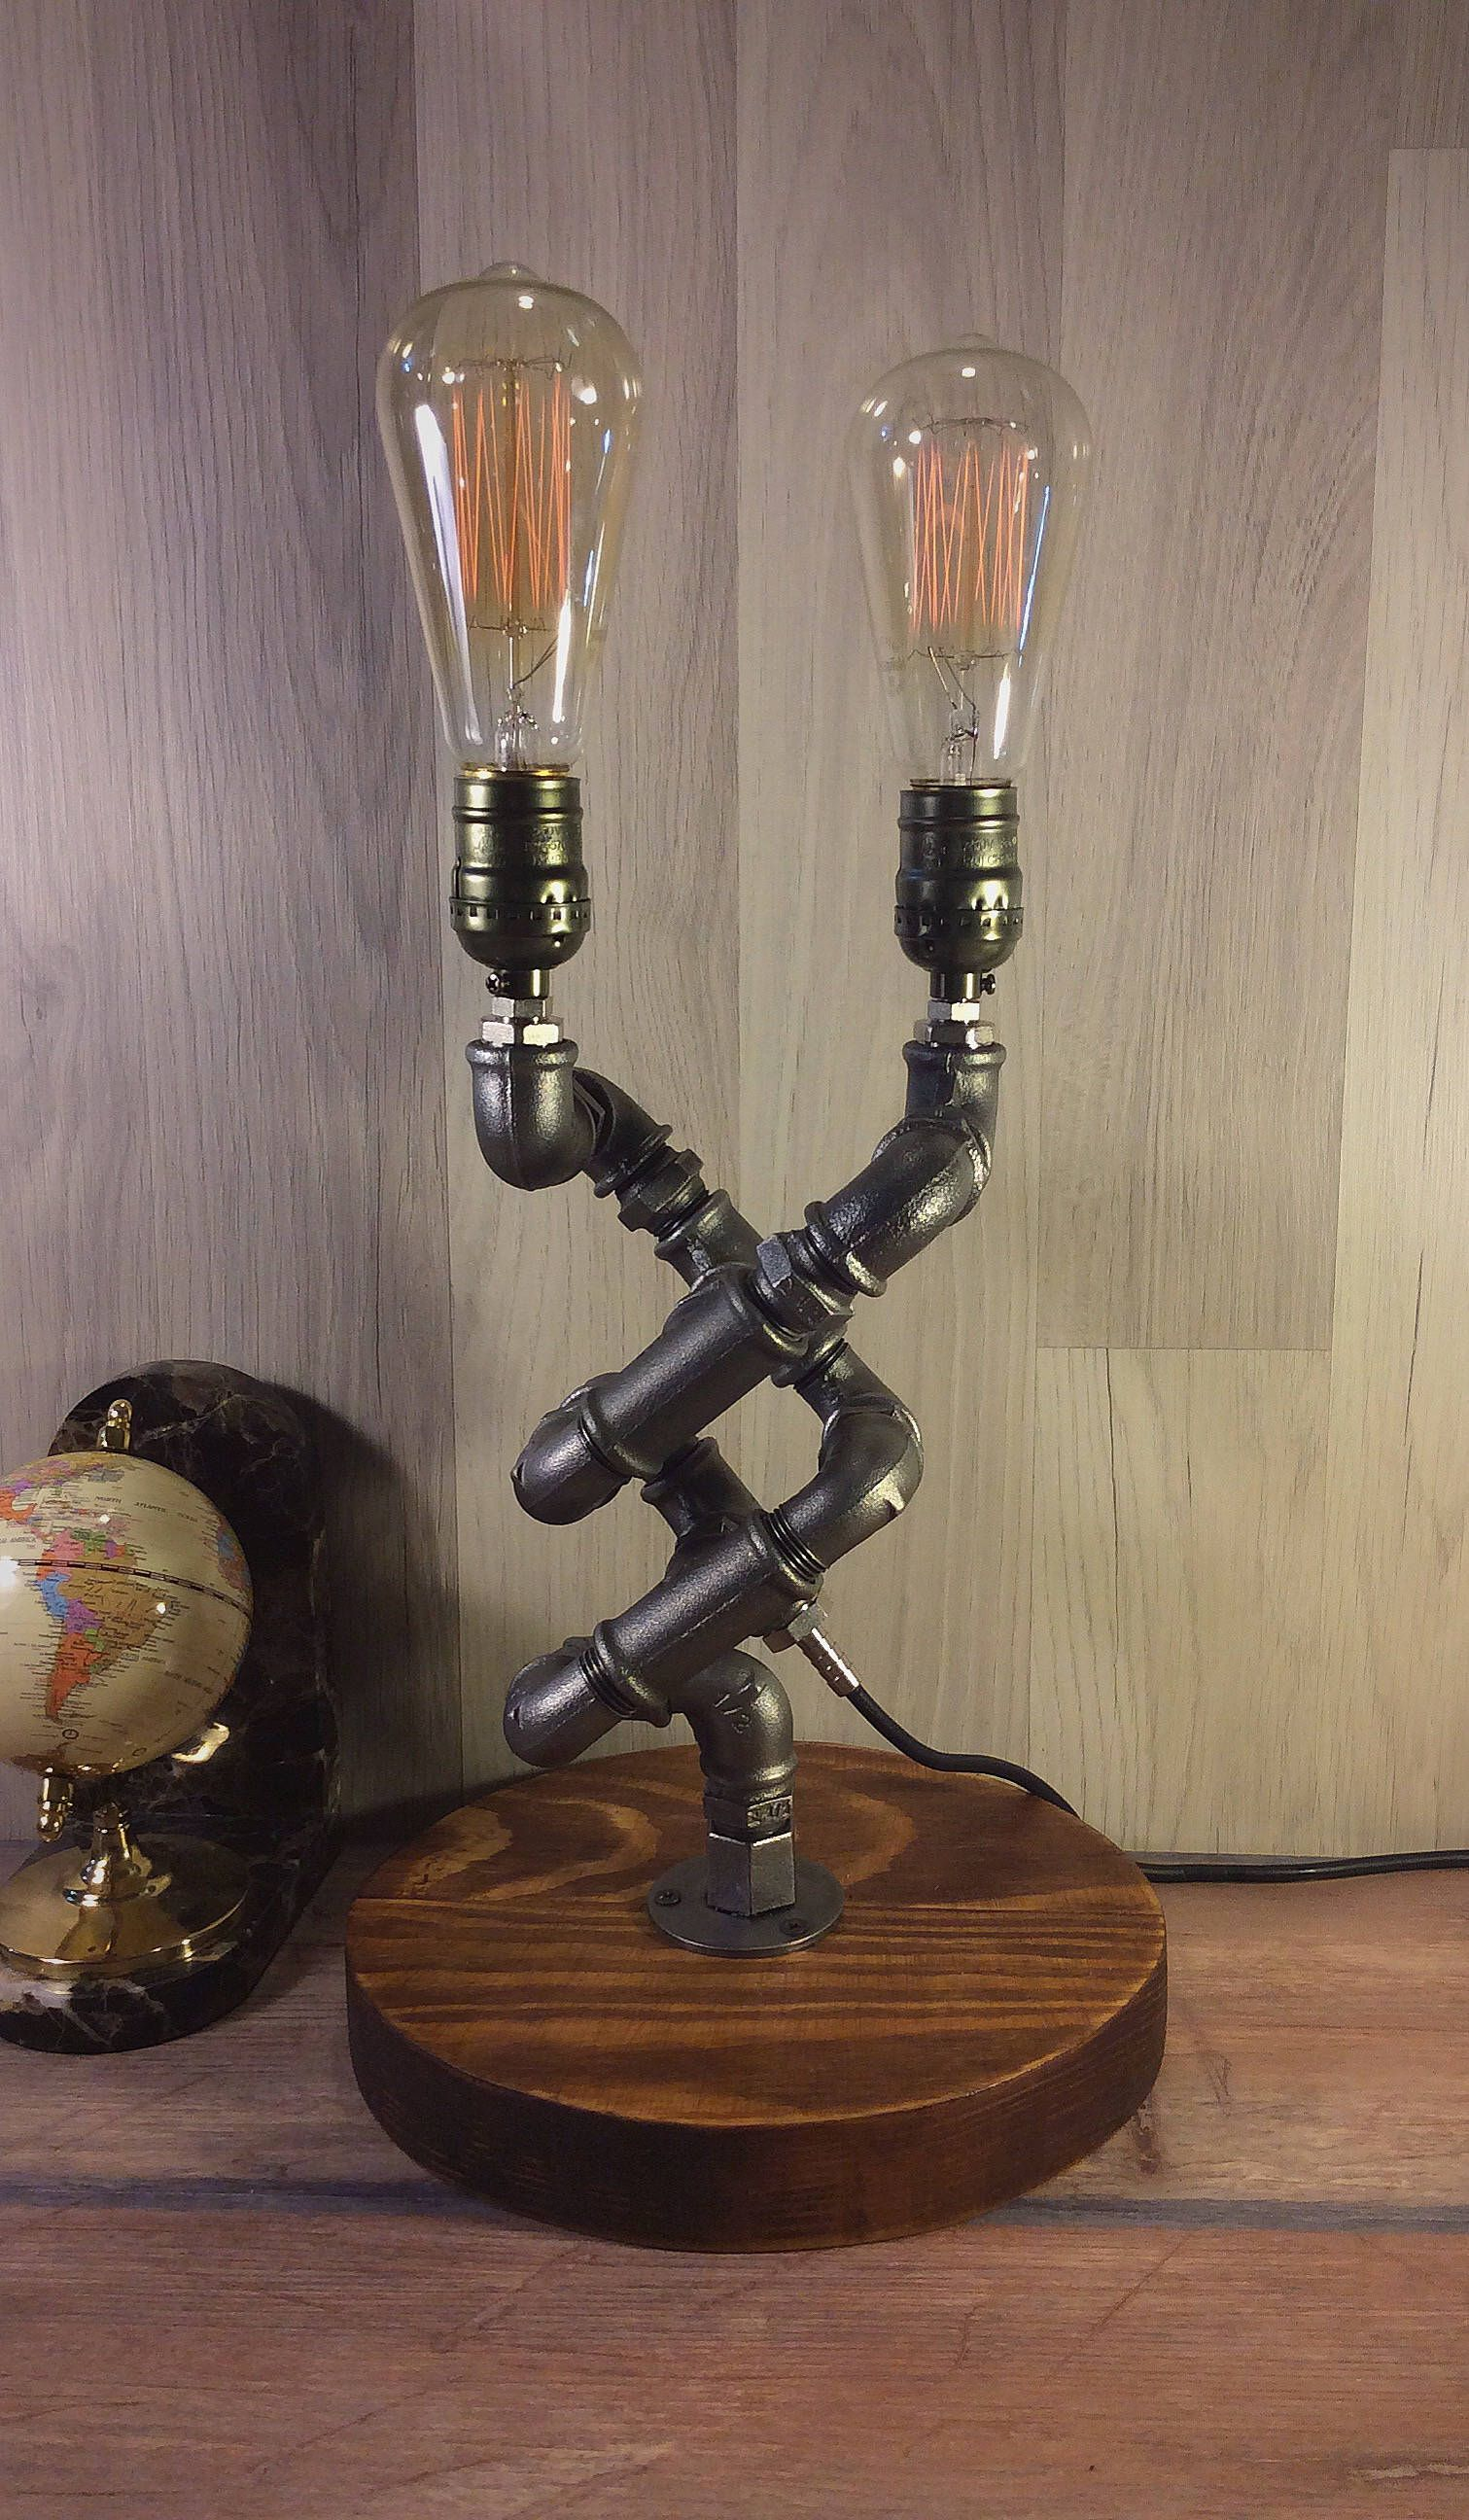 Lampe Kupfer Industrial Steampunk Table Lamp Unique Table Lamp Industrial Lamp